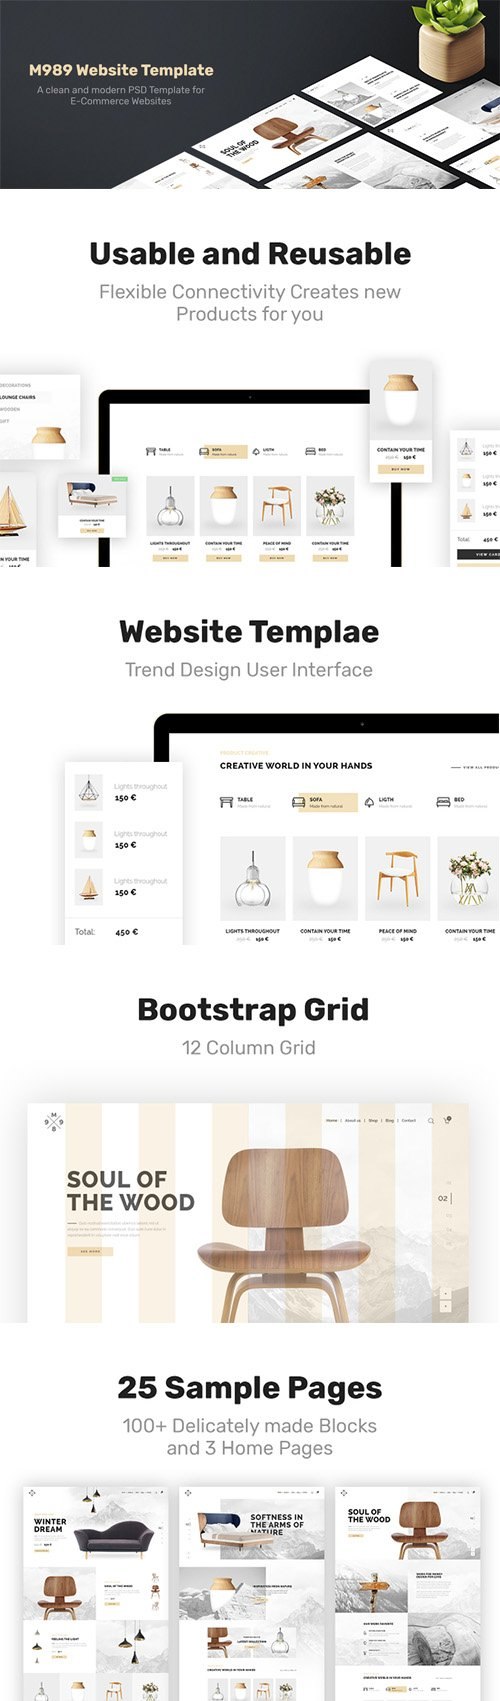 M989 Web Template - Clean and modern PSD template for e-commerce websites